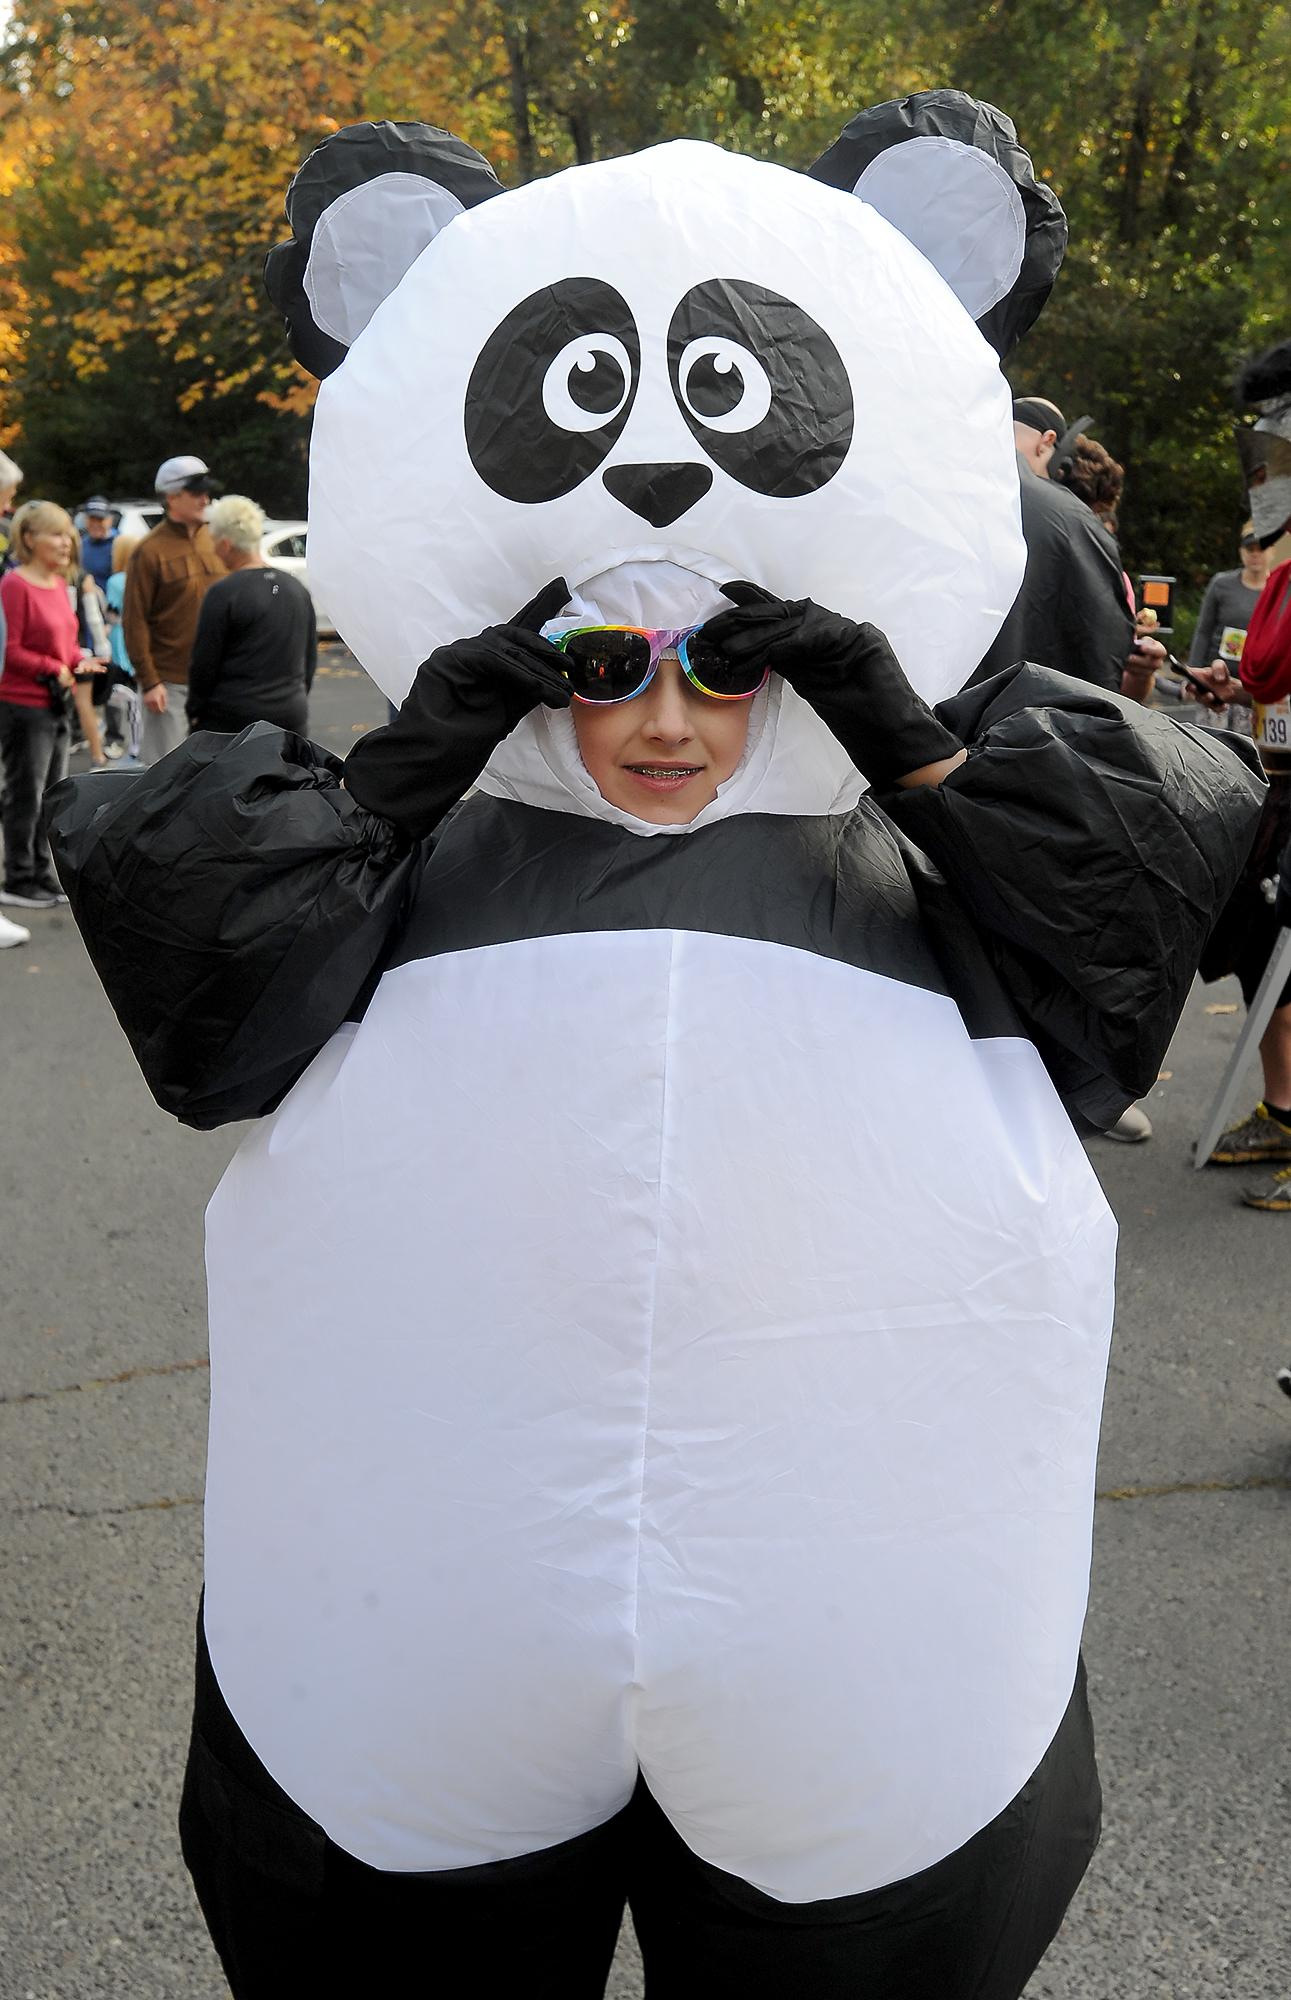 Max Rogers, 10, of Ashland, dons a blow-up panda suit for the Monster Dash run in Lithia Park. Photo by Denise Baratta